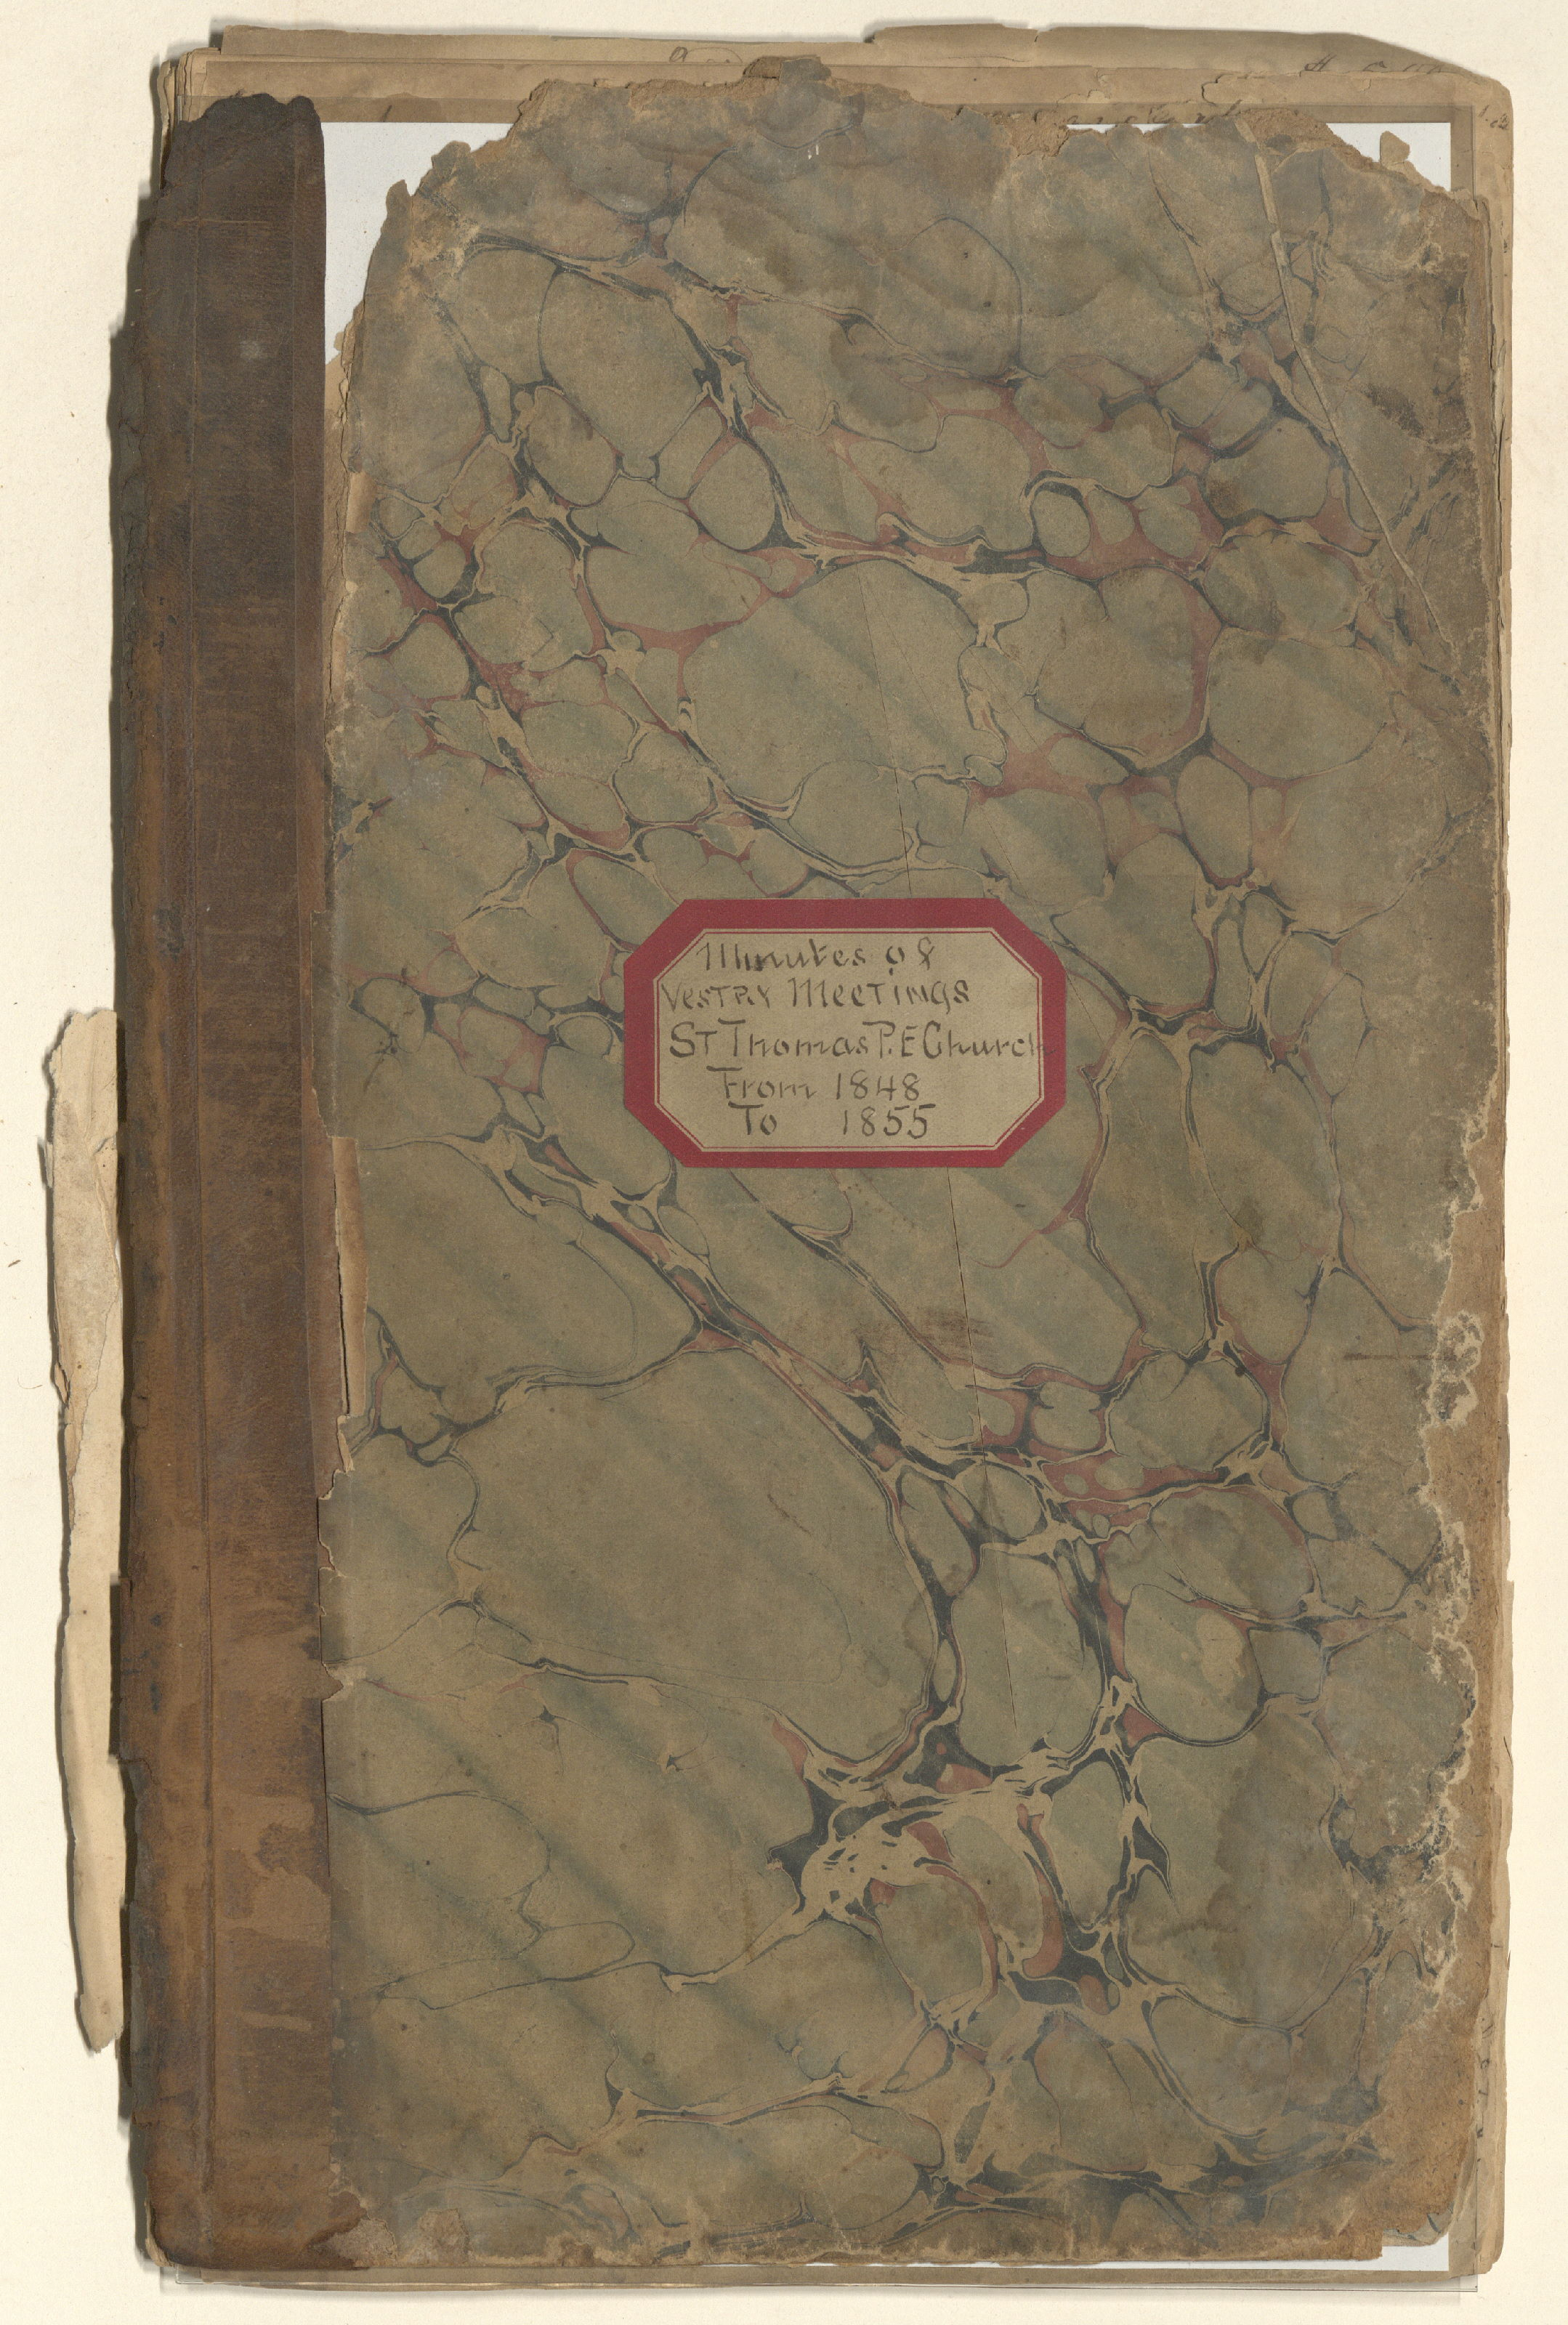 https://www.philageohistory.org/rdic-images/common/get-jpeg-book.cfm/StThomas.VestryMinutes1848-1855.001.FrontCover.jpg